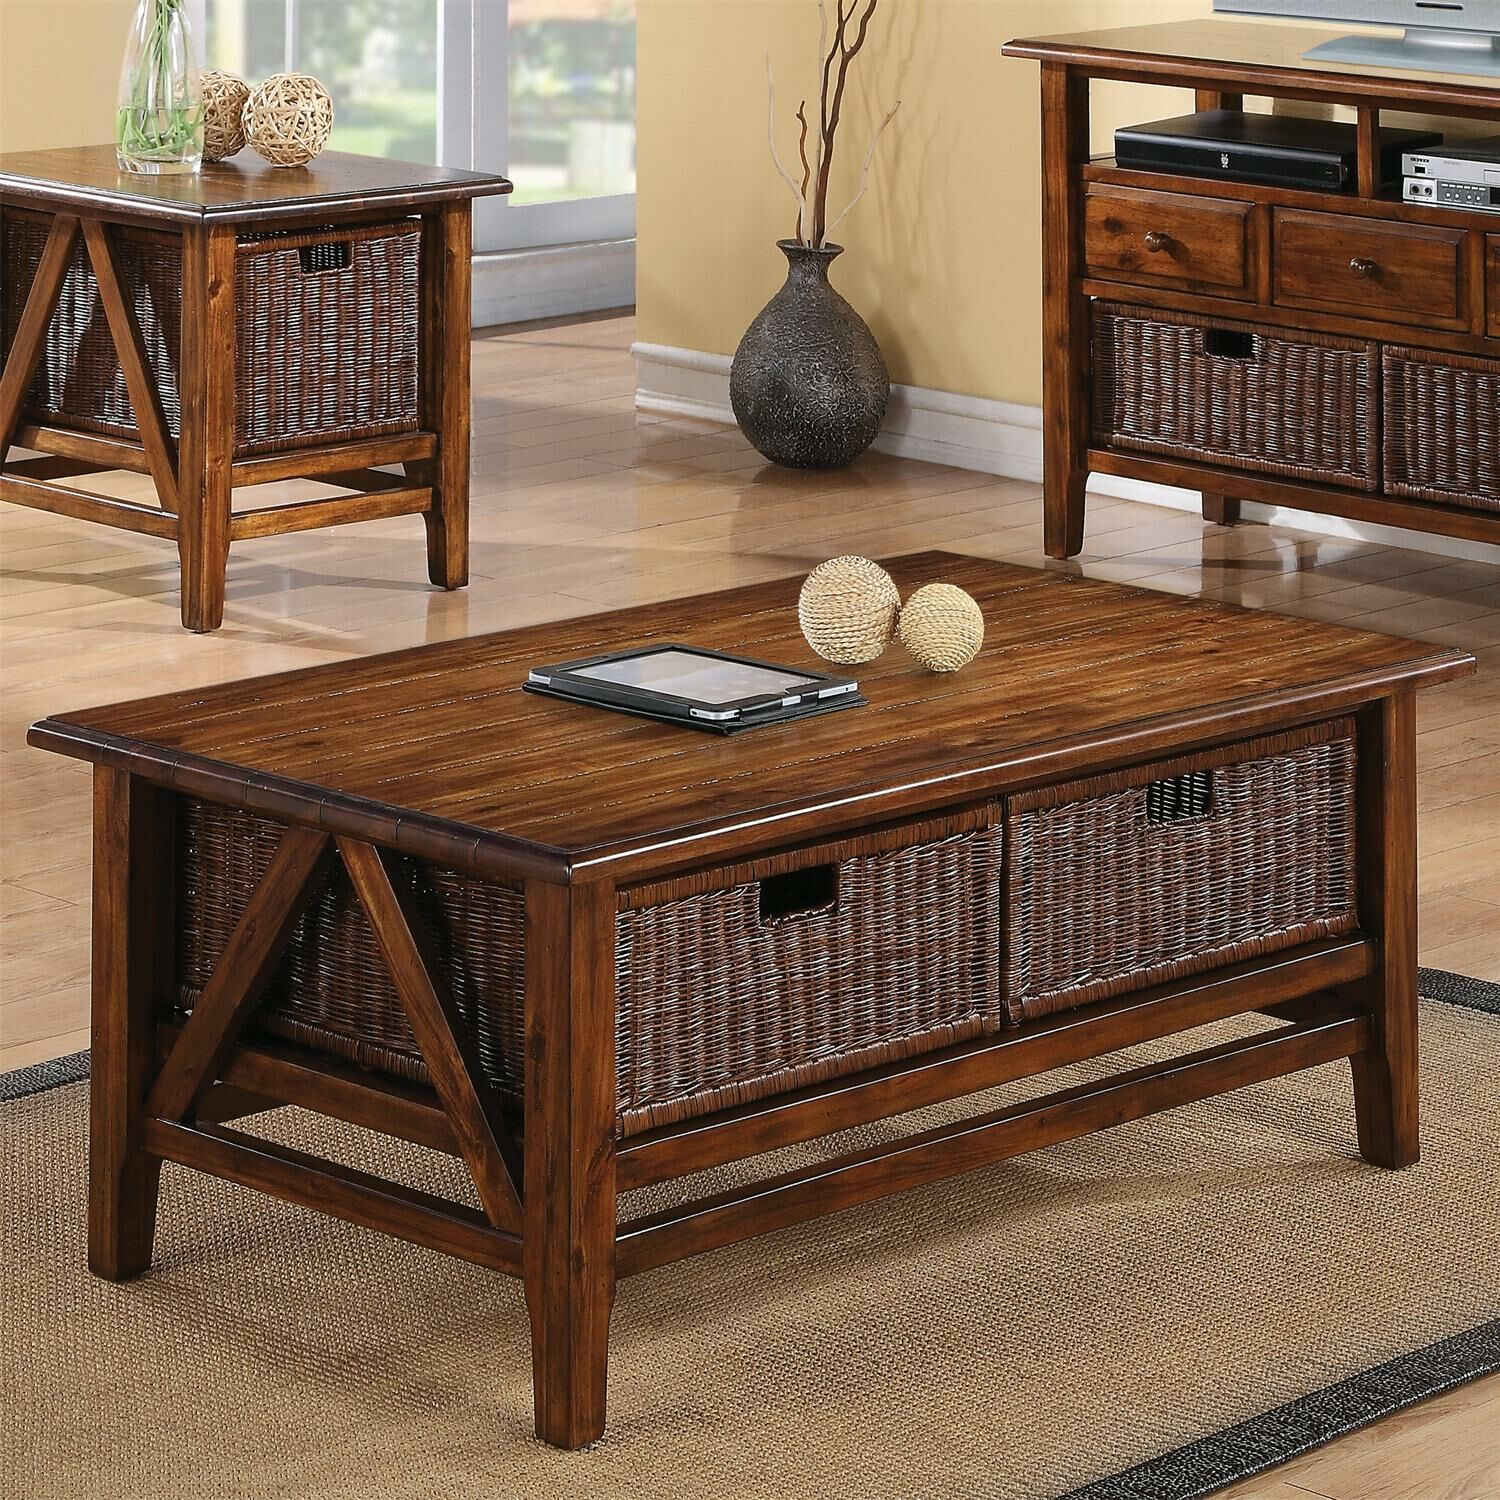 Wellington Coffee Table with Storage